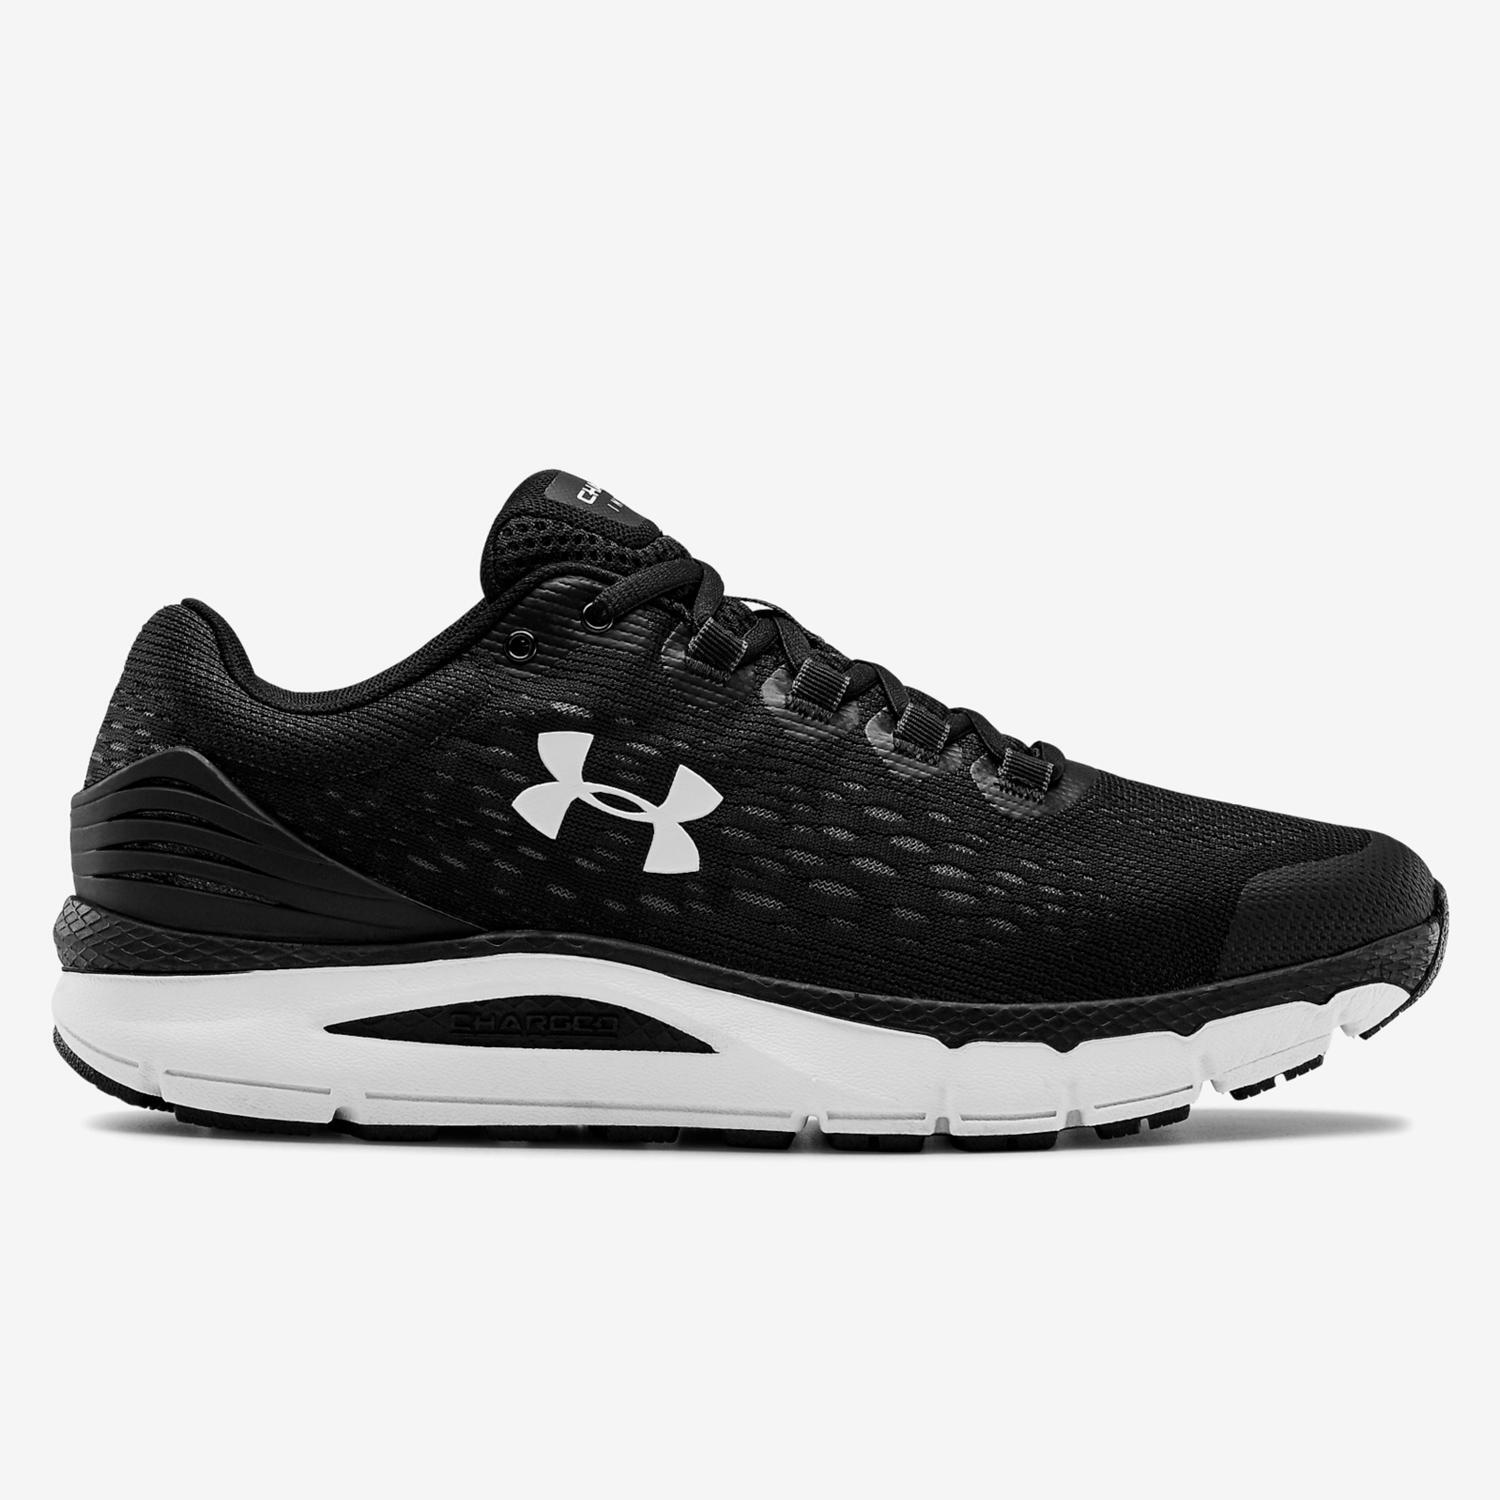 Under Armour Charged Intake 4 - Negro - Zapatillas Running Hombre